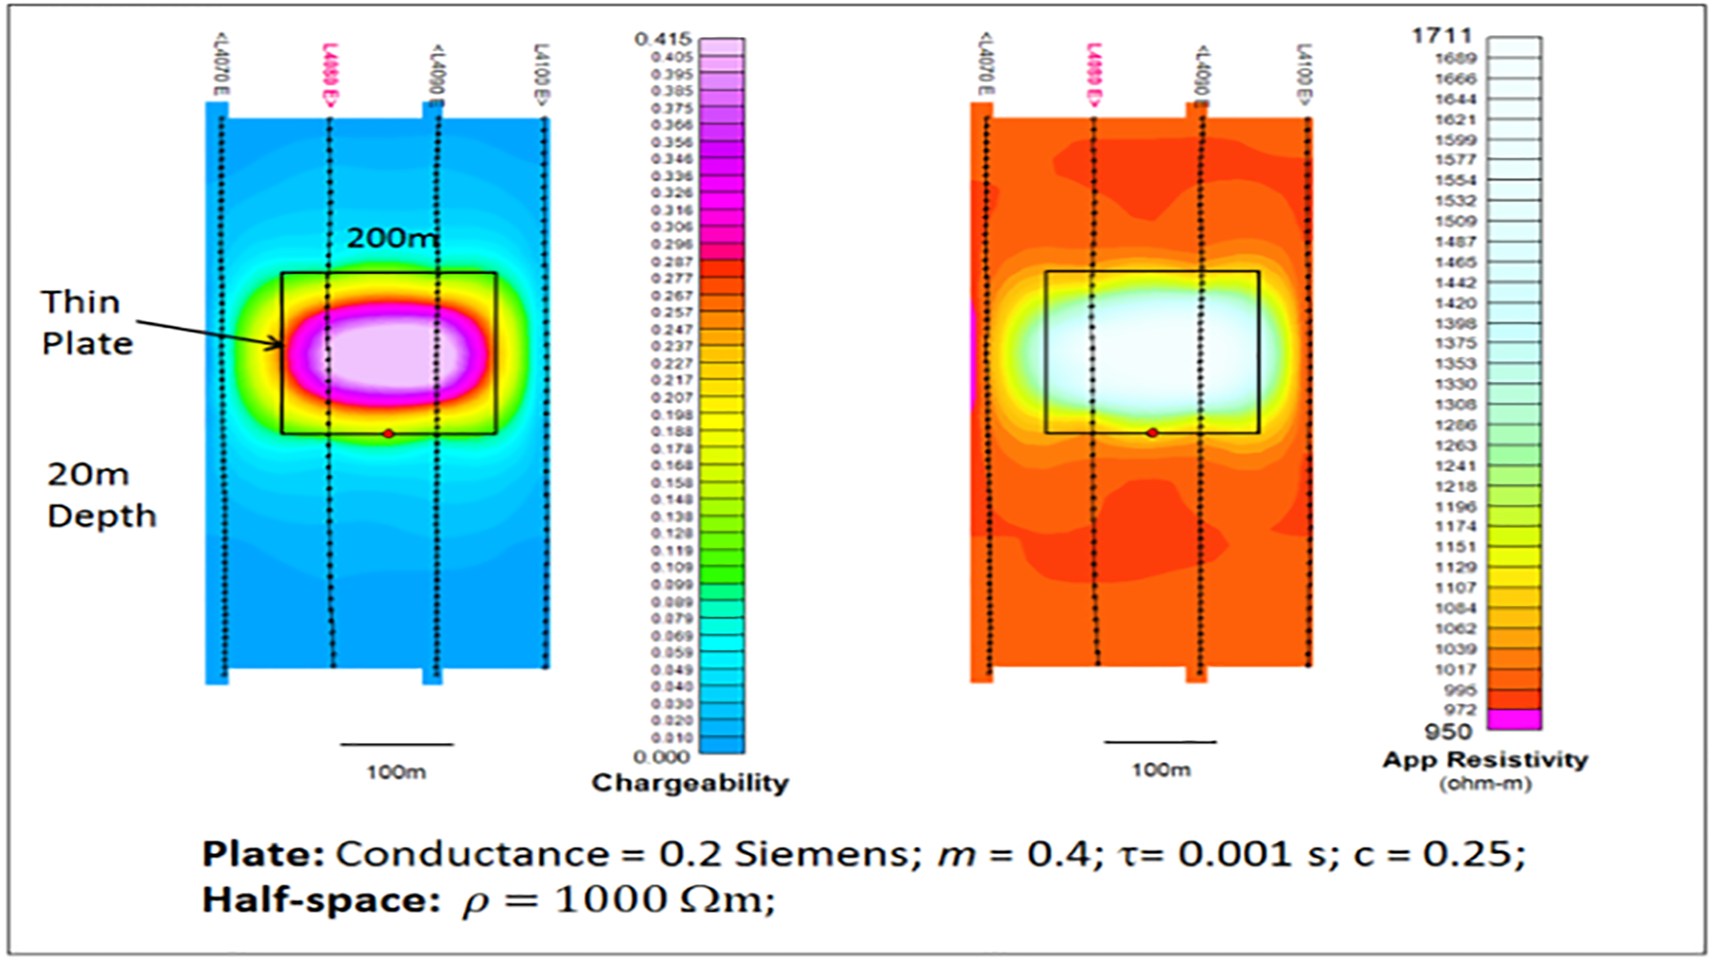 Figure 1: AIIP™ apparent chargeability and resistivity maps of a synthetic chargeable thin plate. L4080 is shown in red.